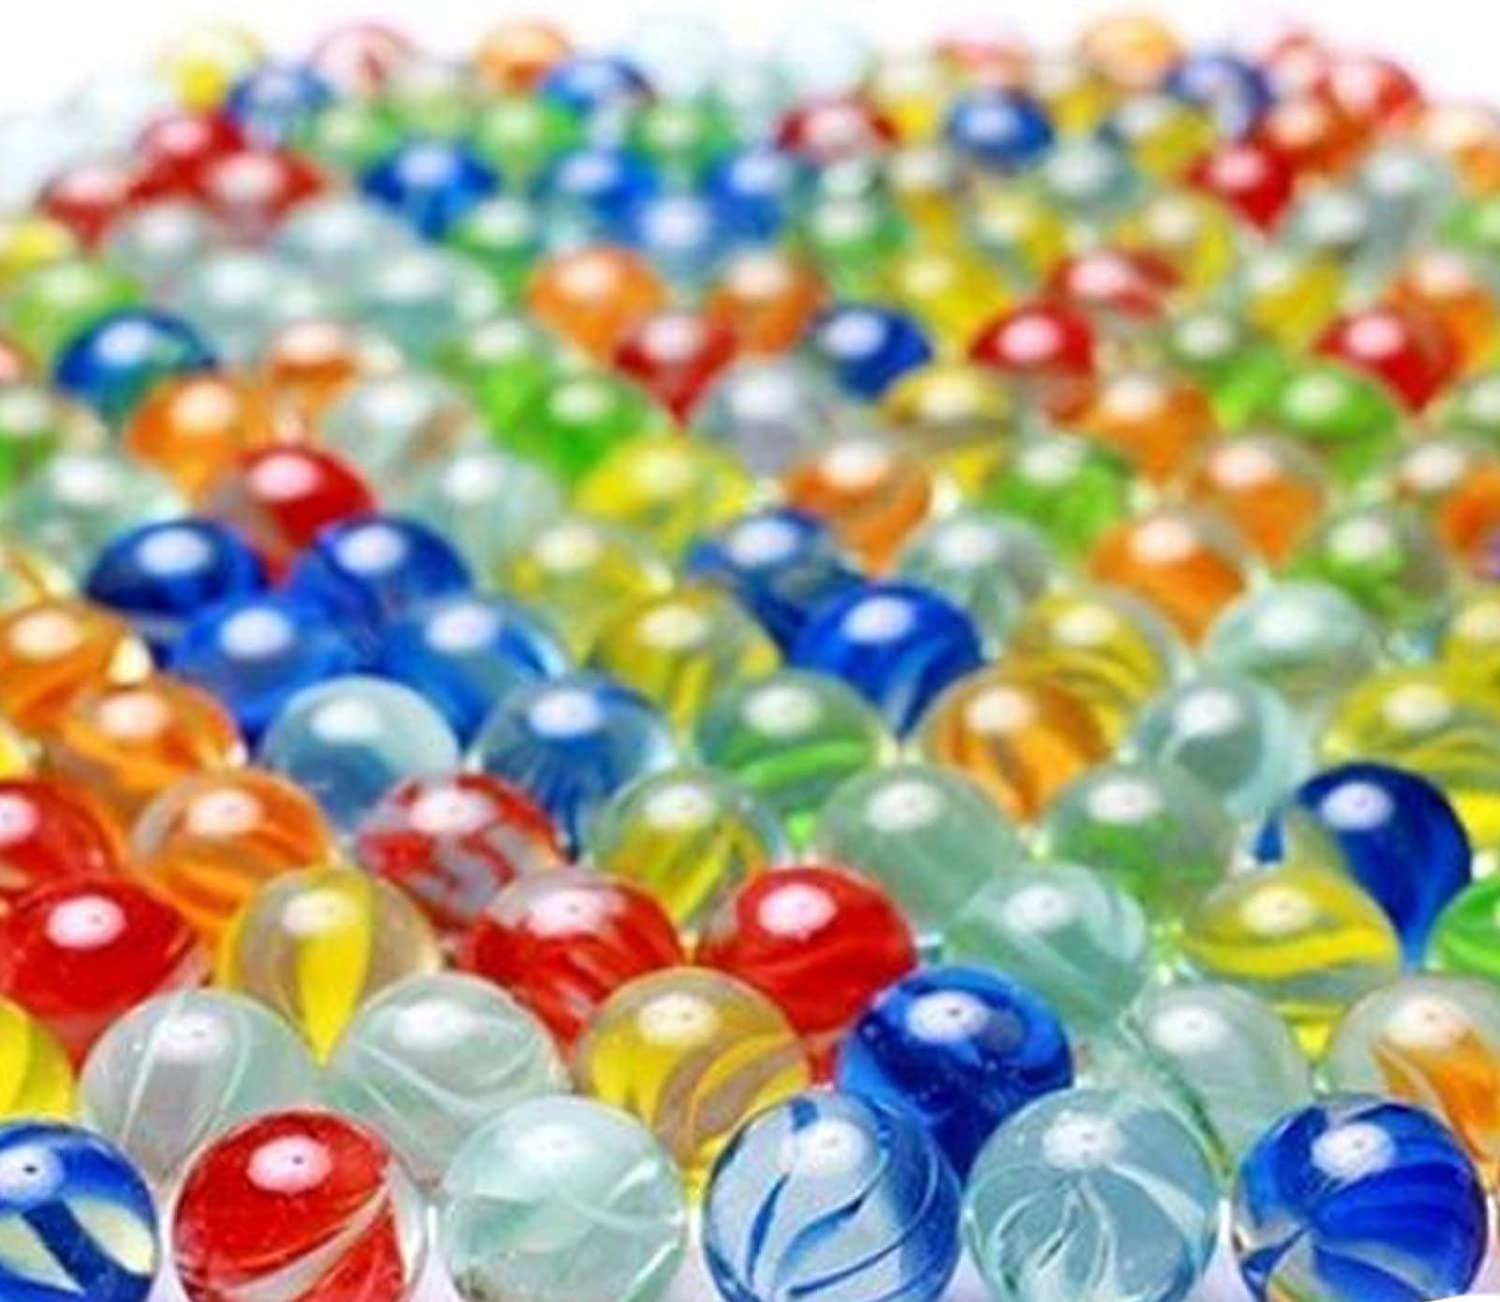 25mm//1 inch 30 Piece Color Mixing Glass Marbles Bulk for Kids Marble Games DIY and Home Decoration Glass Marbles